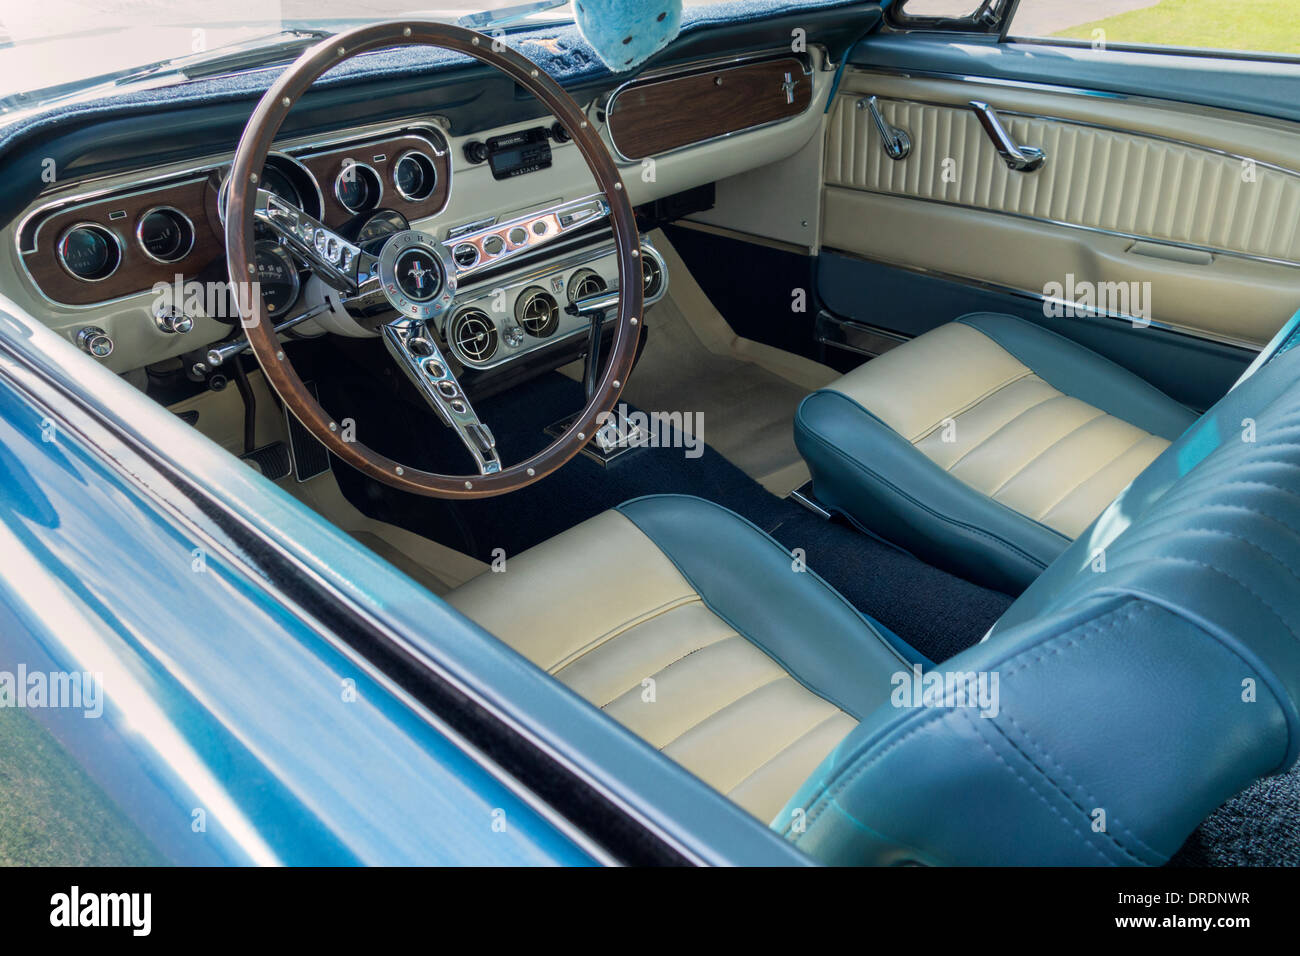 Ford Mustang Stock Photos Images Alamy 1970 Gt Fastback Interior Of A 1965 Image